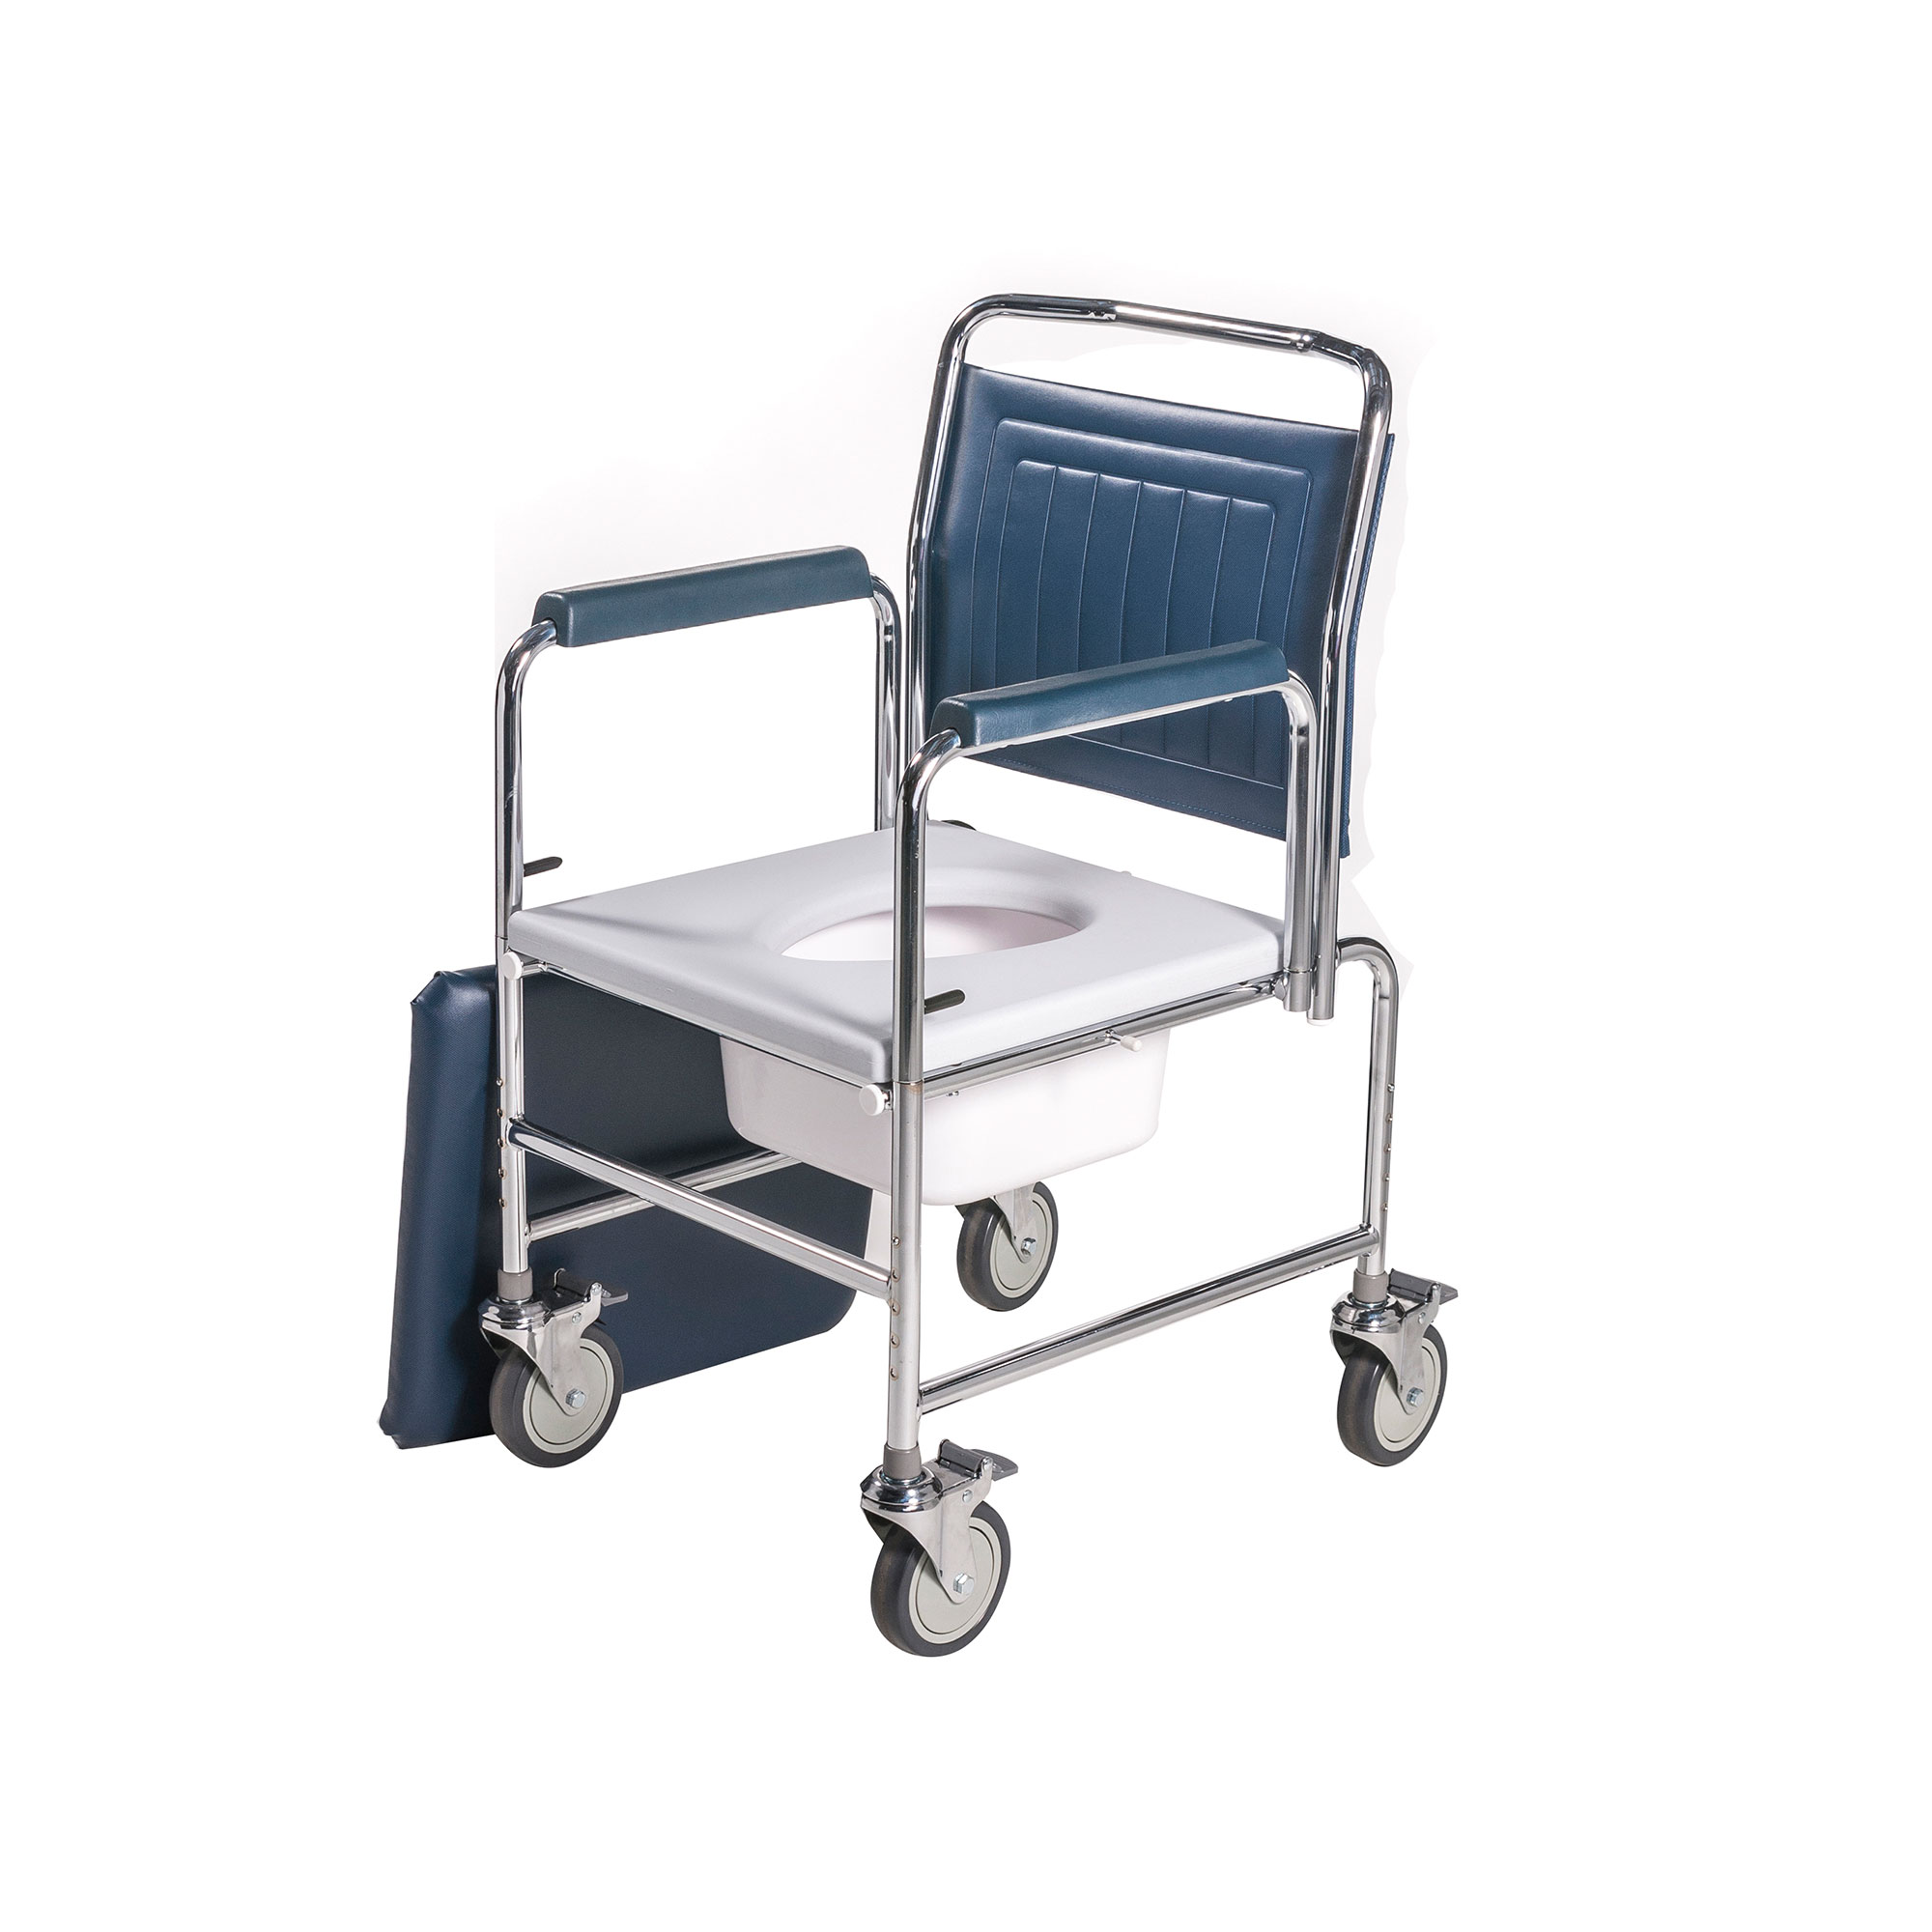 3190A/4BC : Height Adjustable Drop Arm Mobile Commode